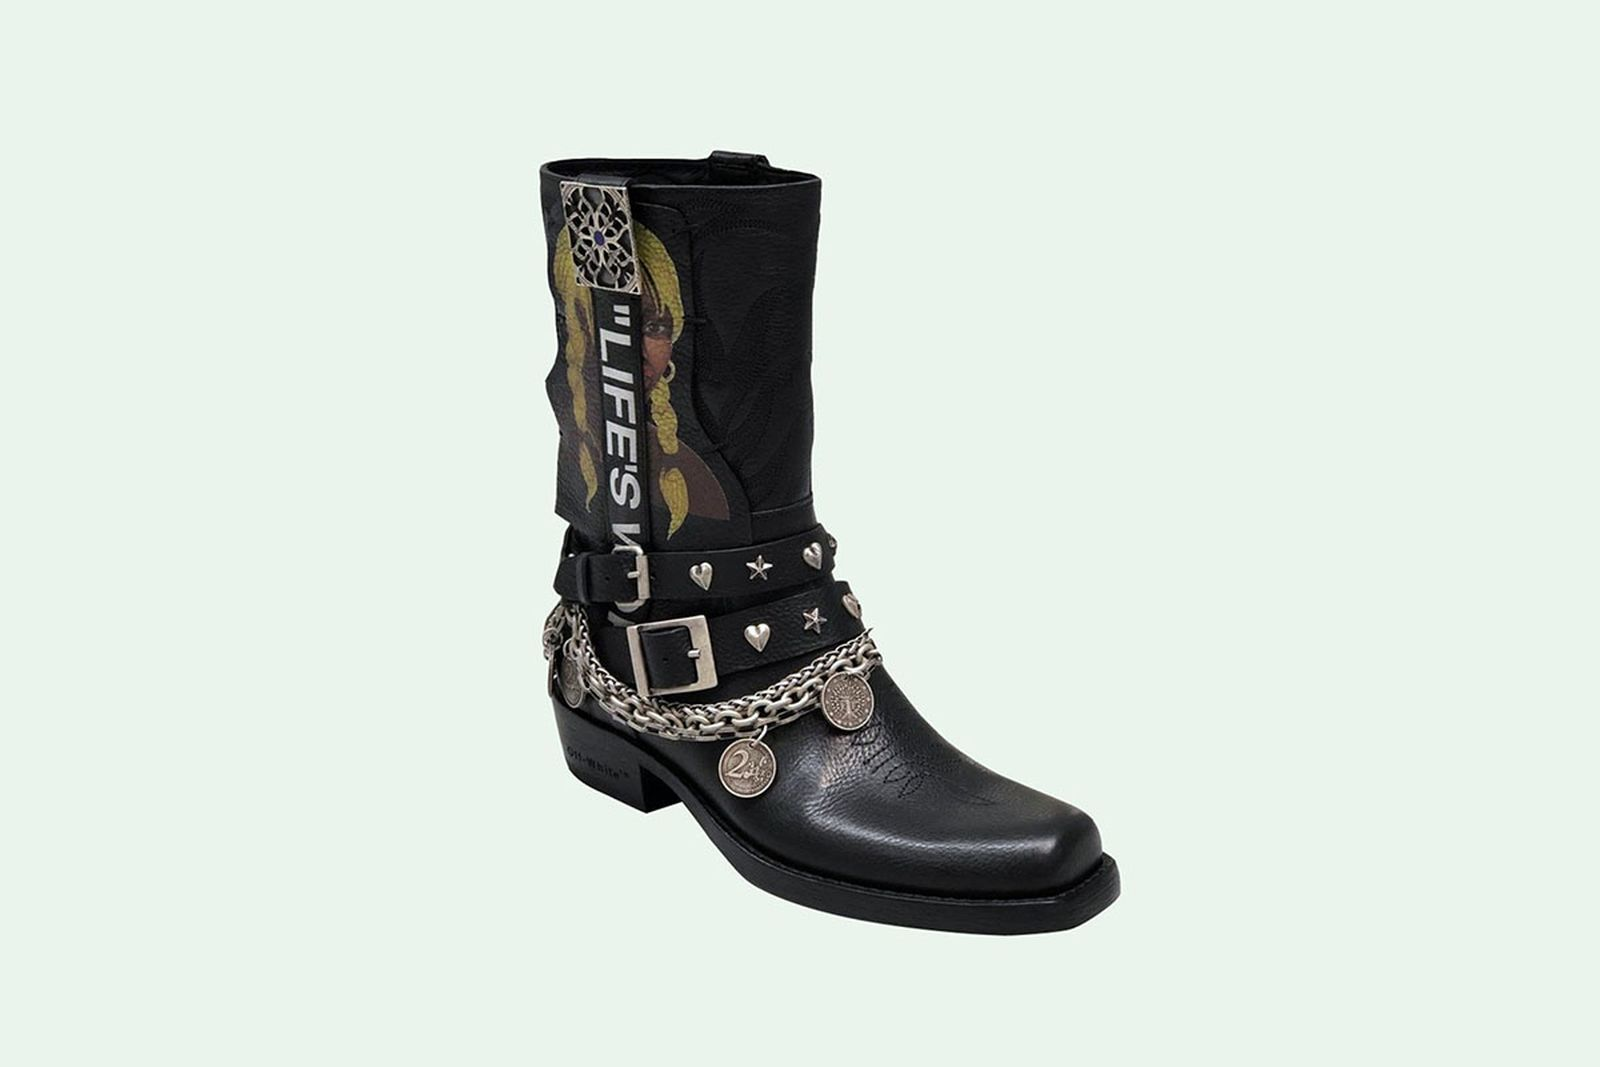 Theophilus London x Off-White black leather boots